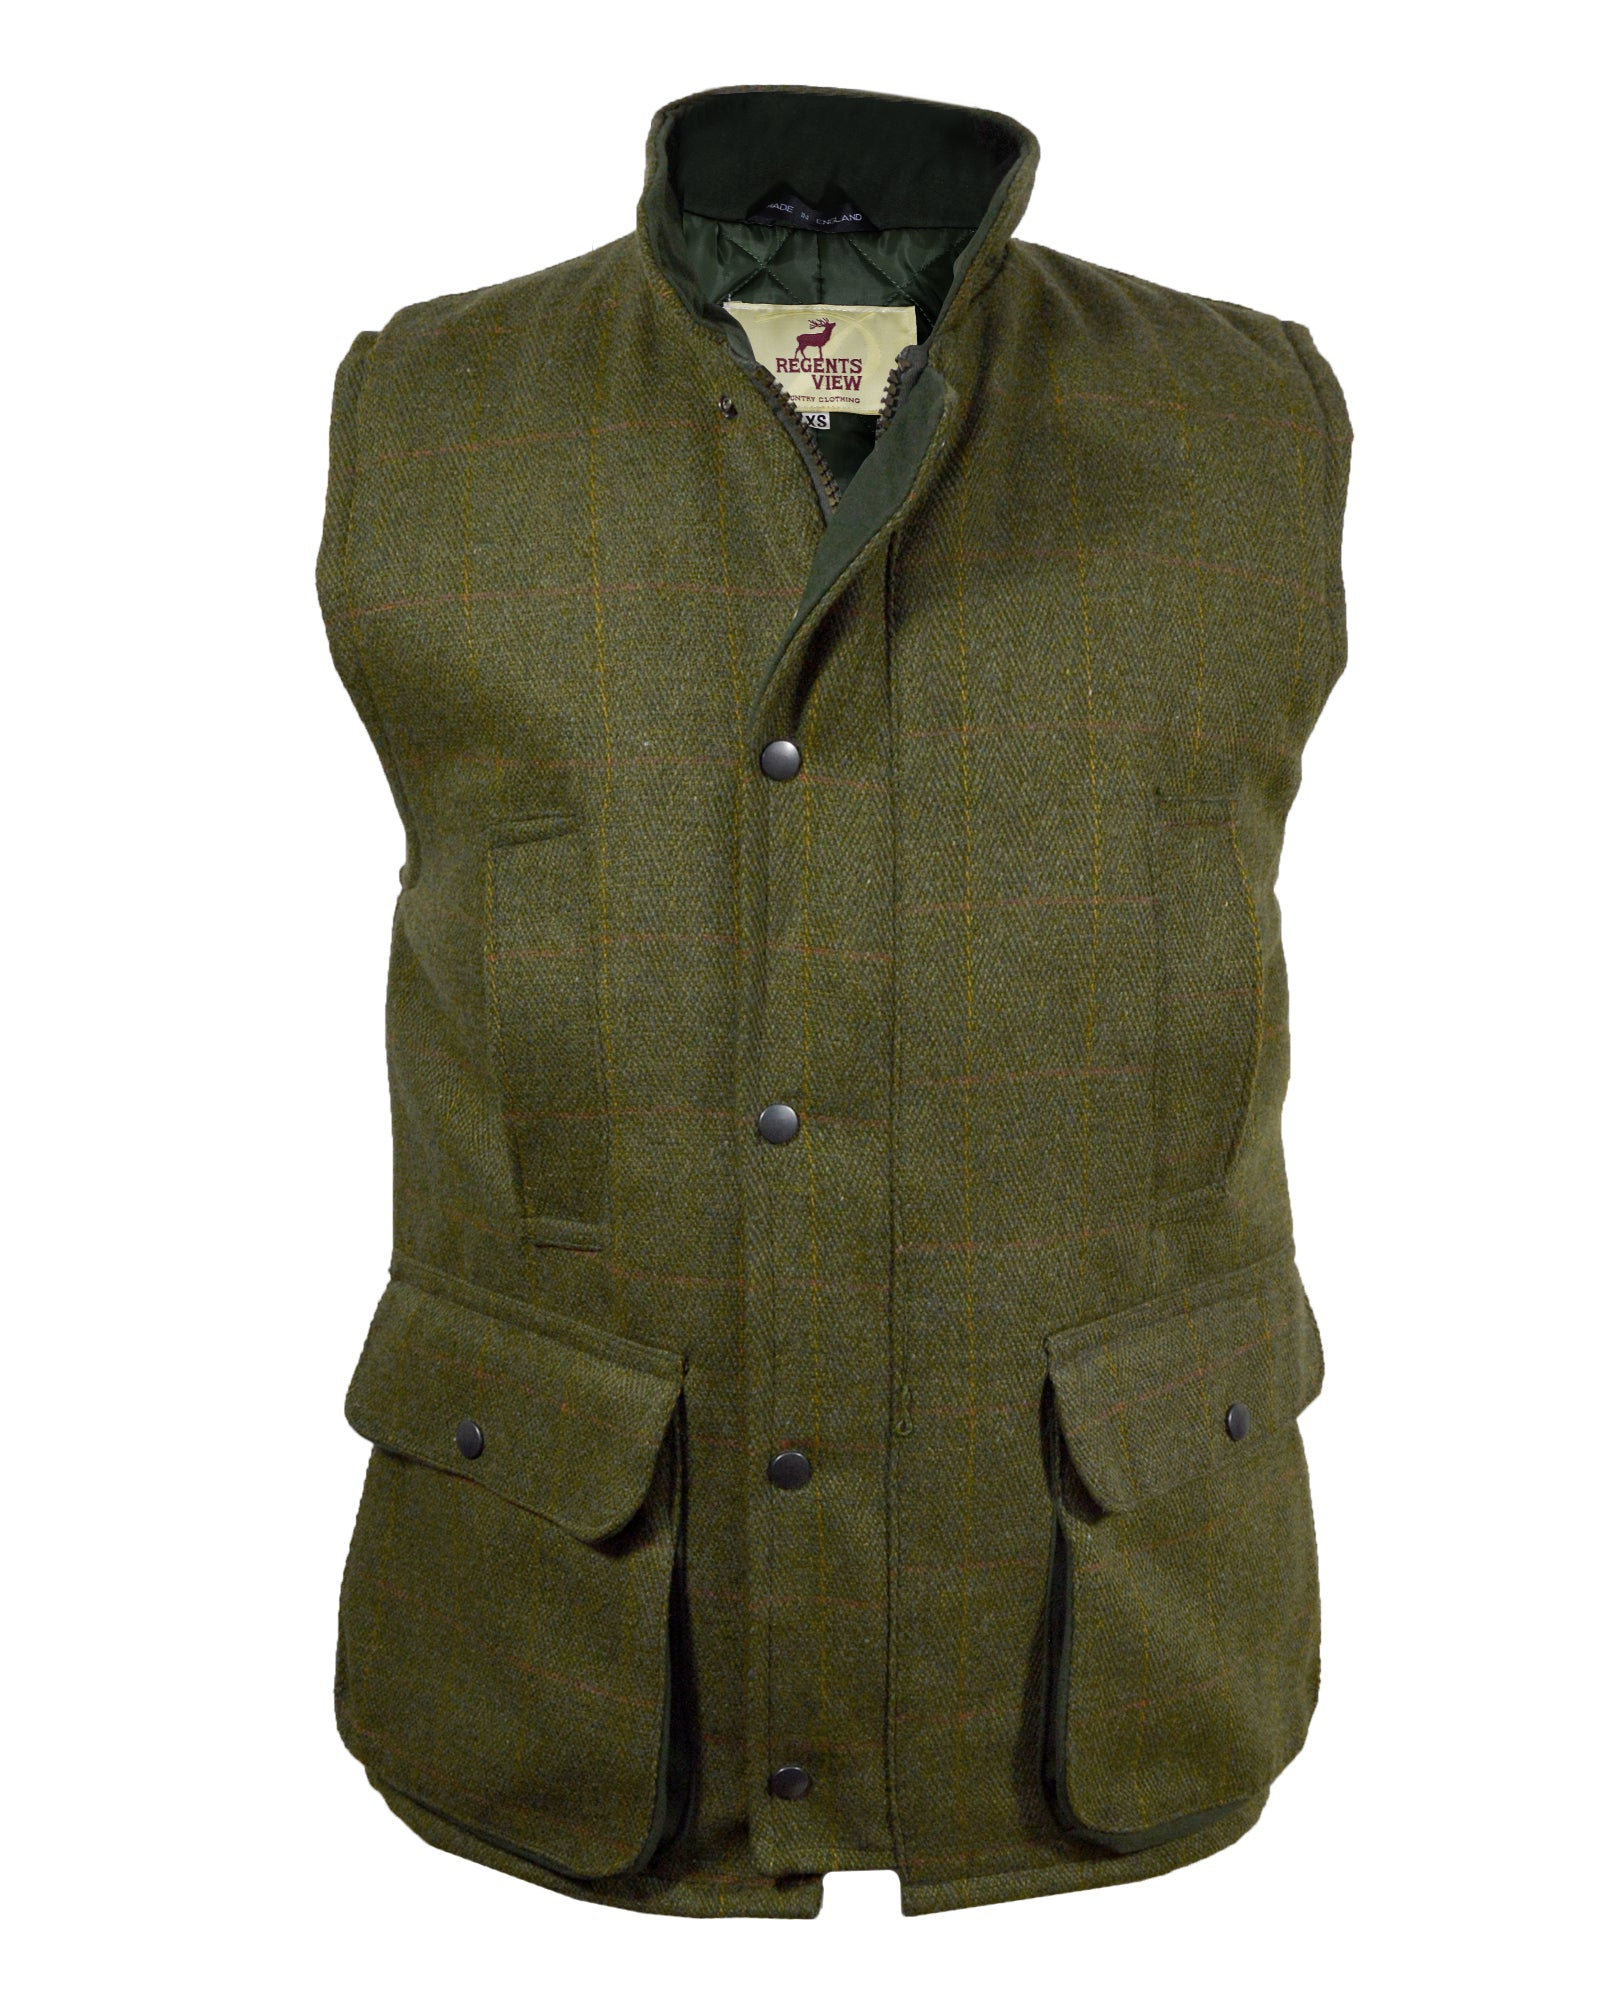 Regents View Mens Tweed Bodywarmer - Dark Tweed